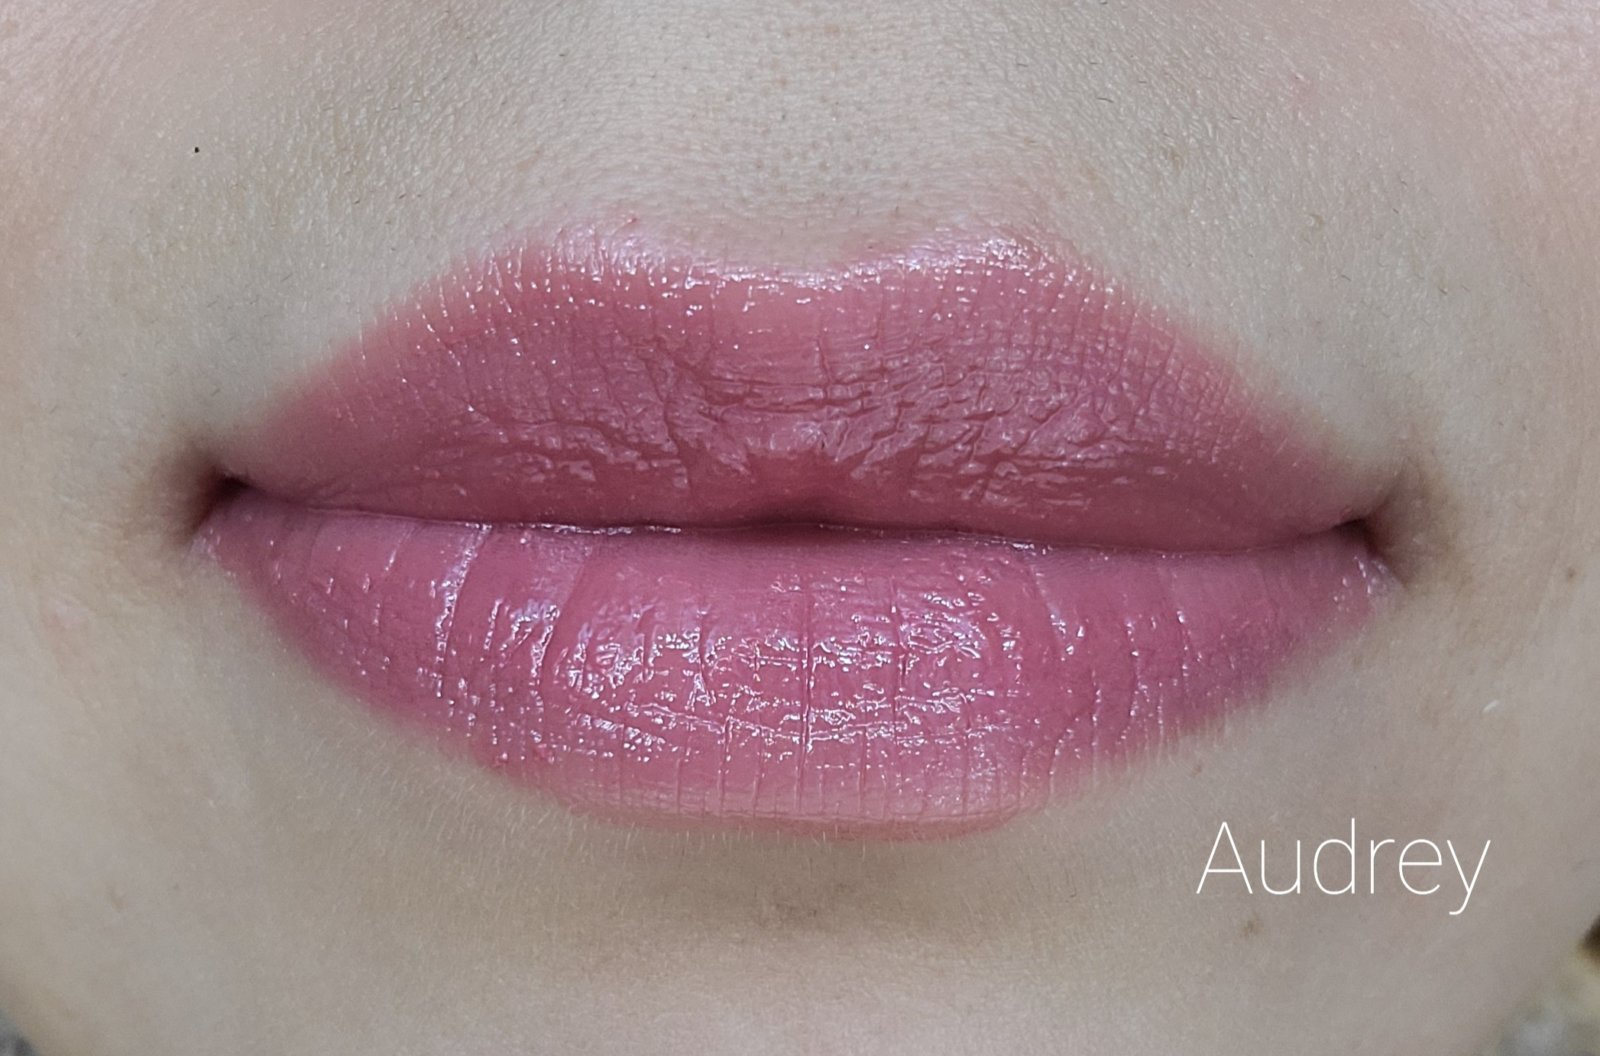 Image of close up lips wearing Lipstick by Red Apple Lipstick in the shade called Audrey. This is neutral pink without shimmer.